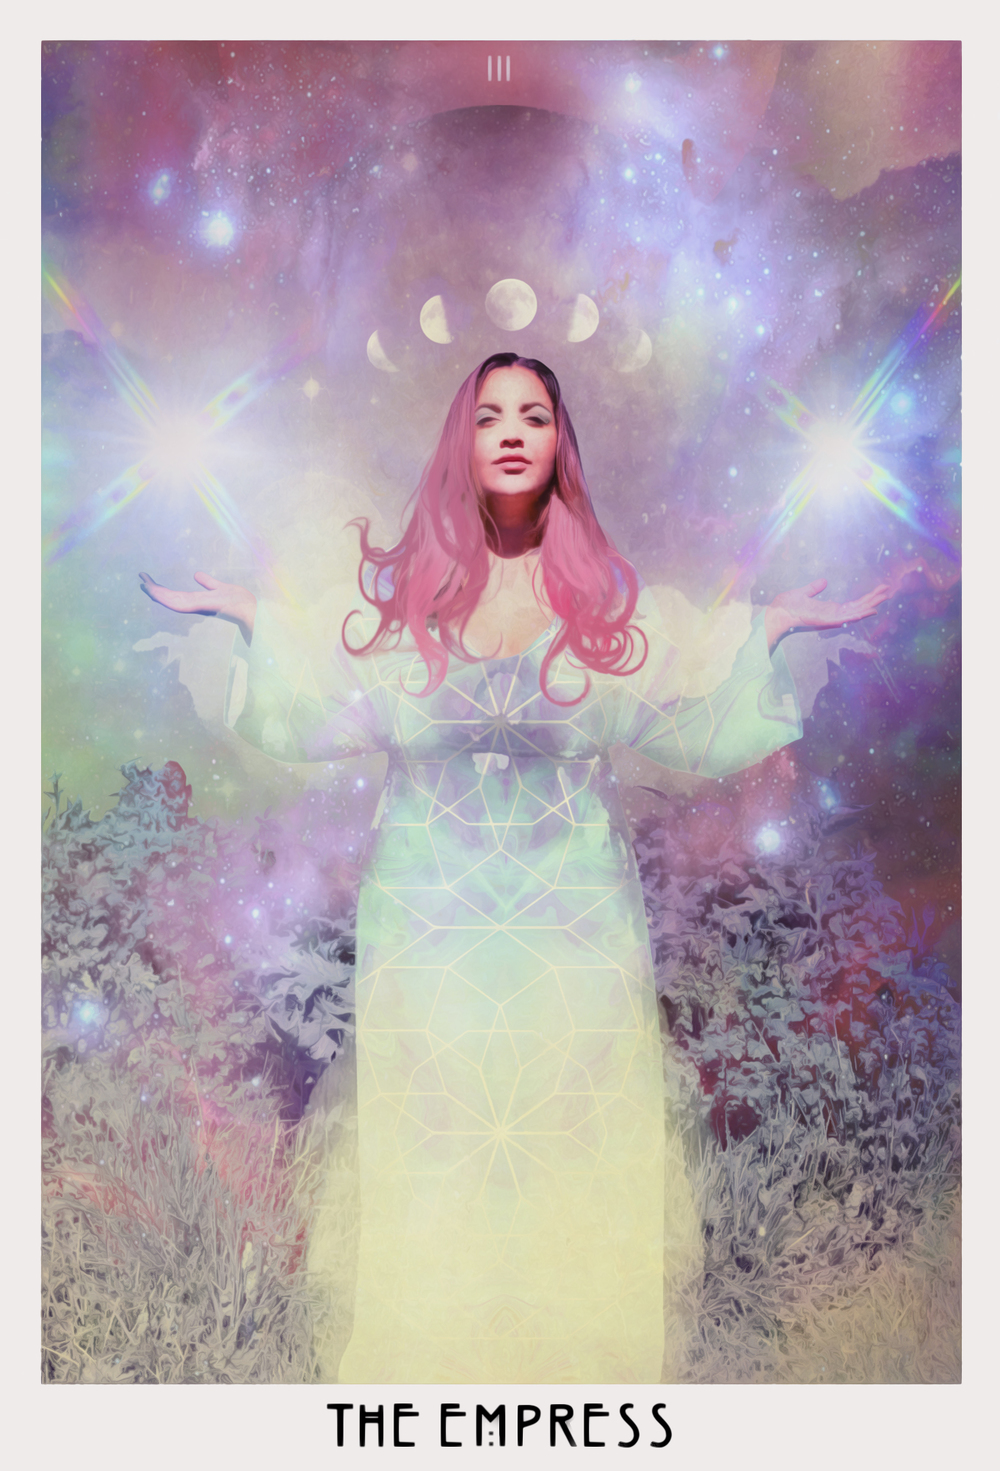 Tarot artwork by Starchild Tarot. Available for purchase on our website.